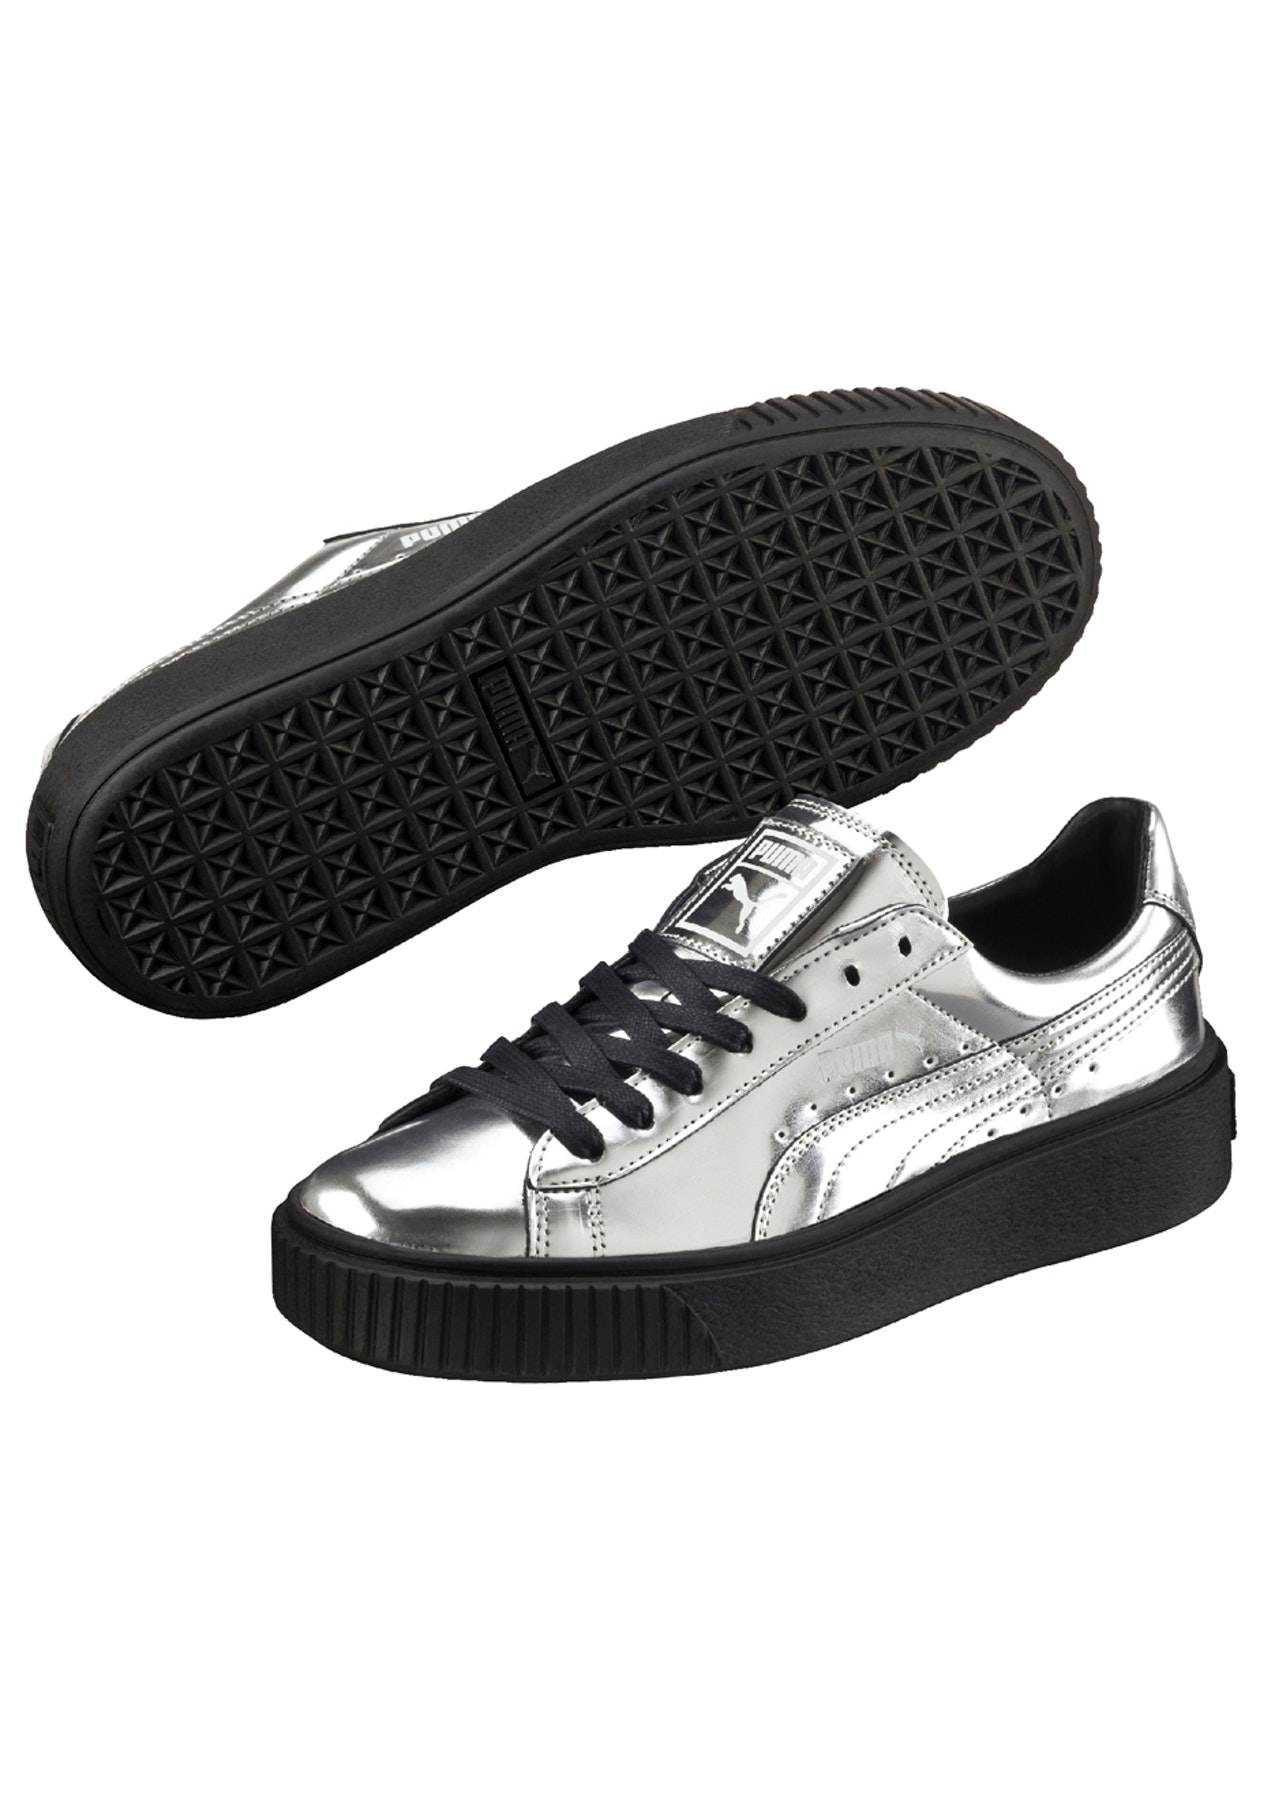 Puma - Basket Creeper Metallic Silver - Womens Activewear Outlet - Onceit 047273f31d